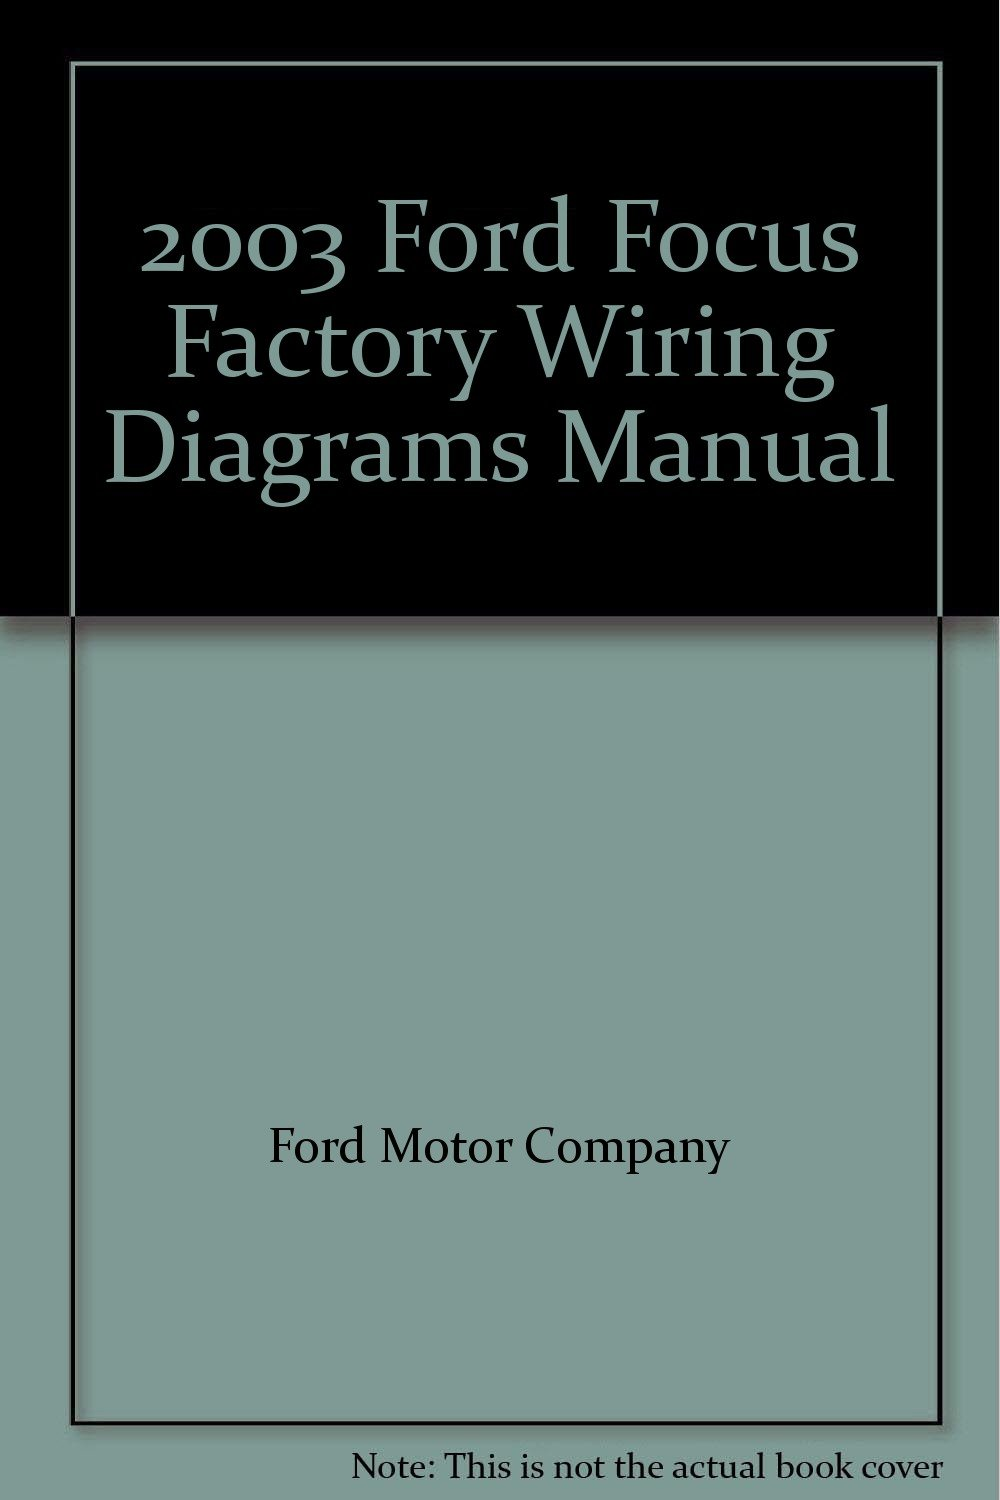 2003 Ford Focus Factory Wiring Diagrams Manual: Ford Motor ... Factory Motor Wiring Diagram on